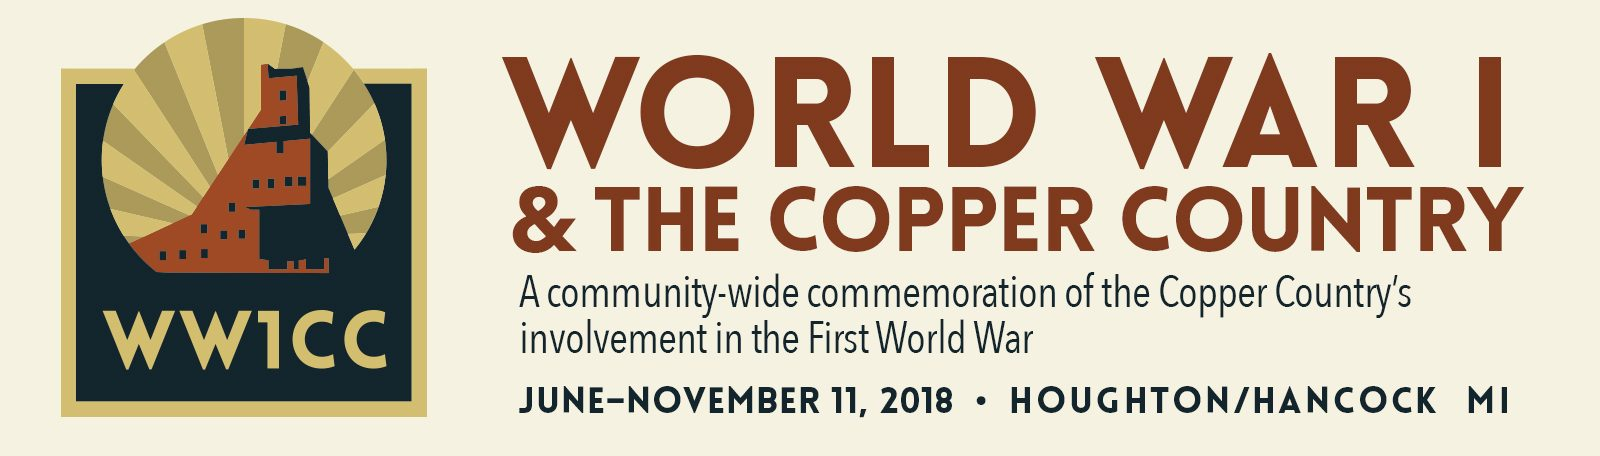 World War One & the Copper Country